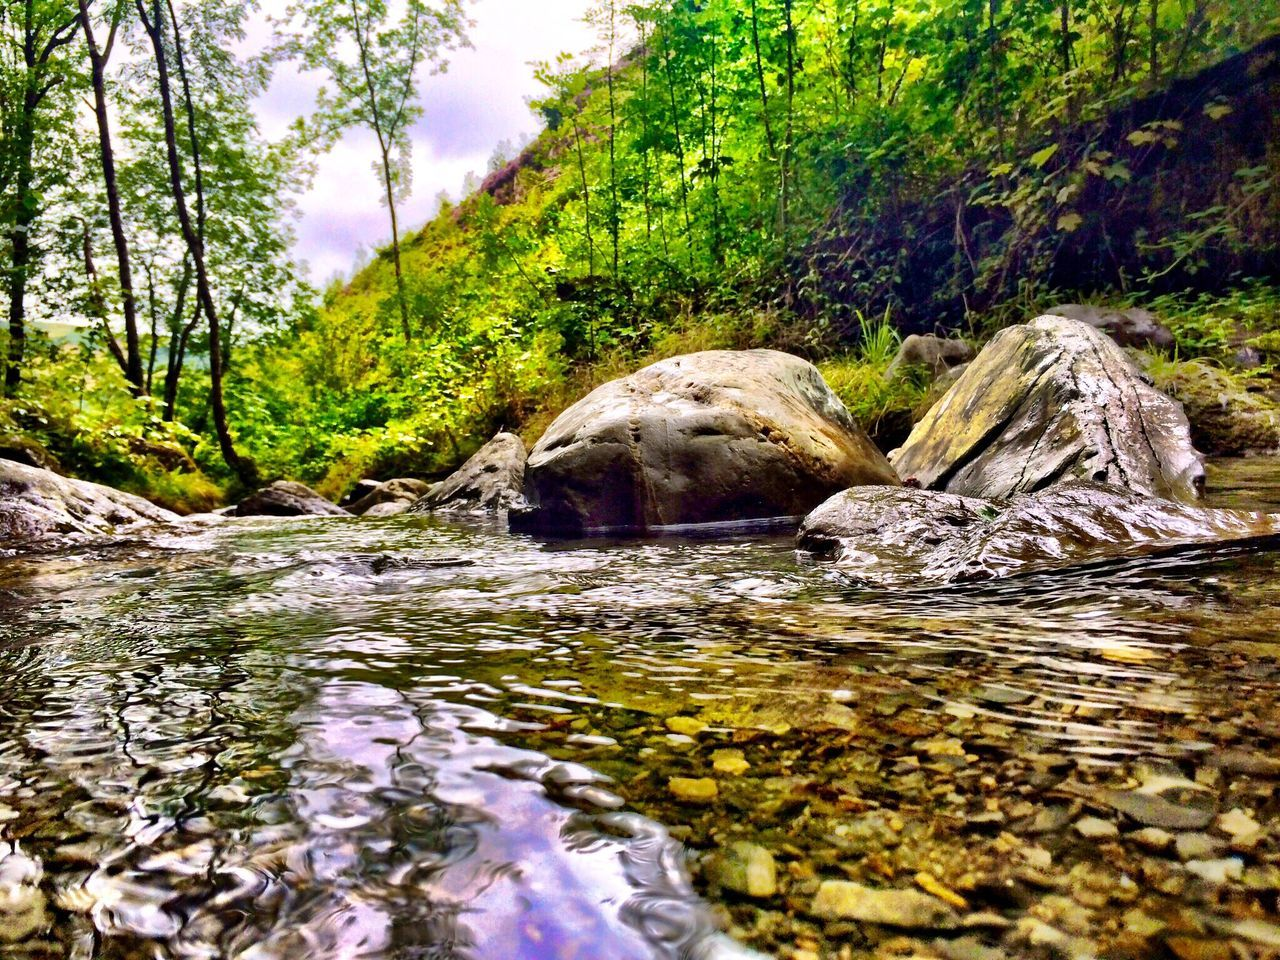 #hiking #through #pantperthog #machynlleth #wales #adventure #forest #walk taken on my #iphone6splus by @jg.photography.official Hiking Hikingadventures Machynlleth Wales Forest Walk Water Rocks Rocks And Water Countryside Adventure IPhoneography